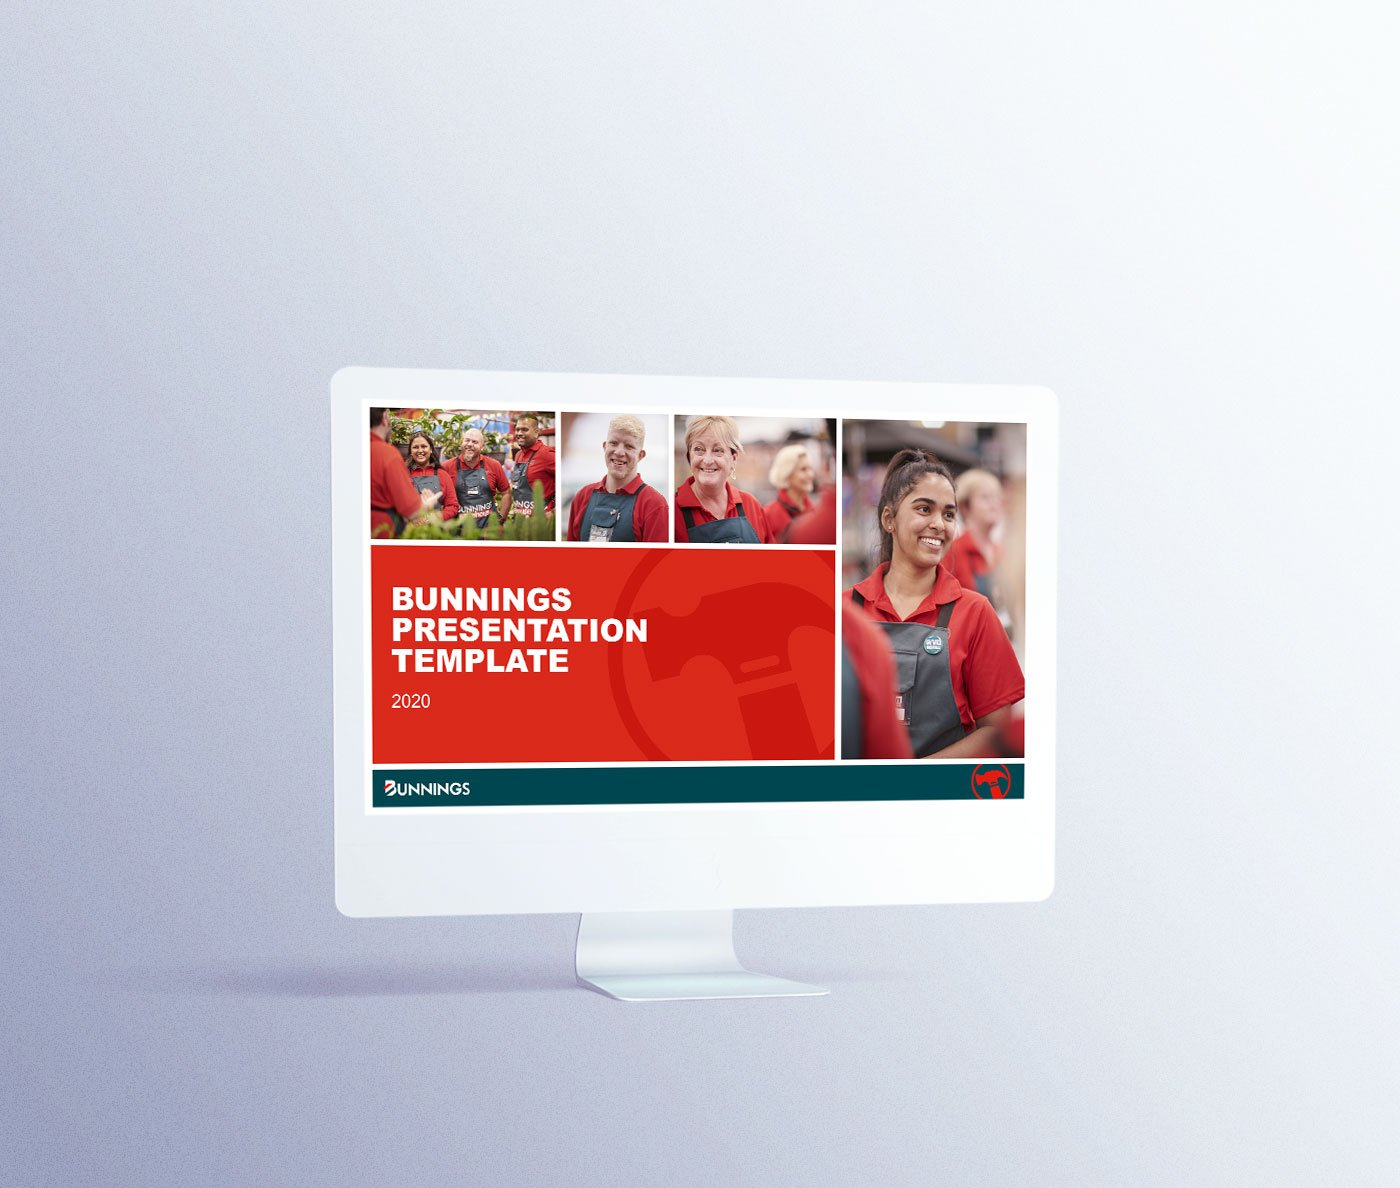 Bunnings presentation cover design